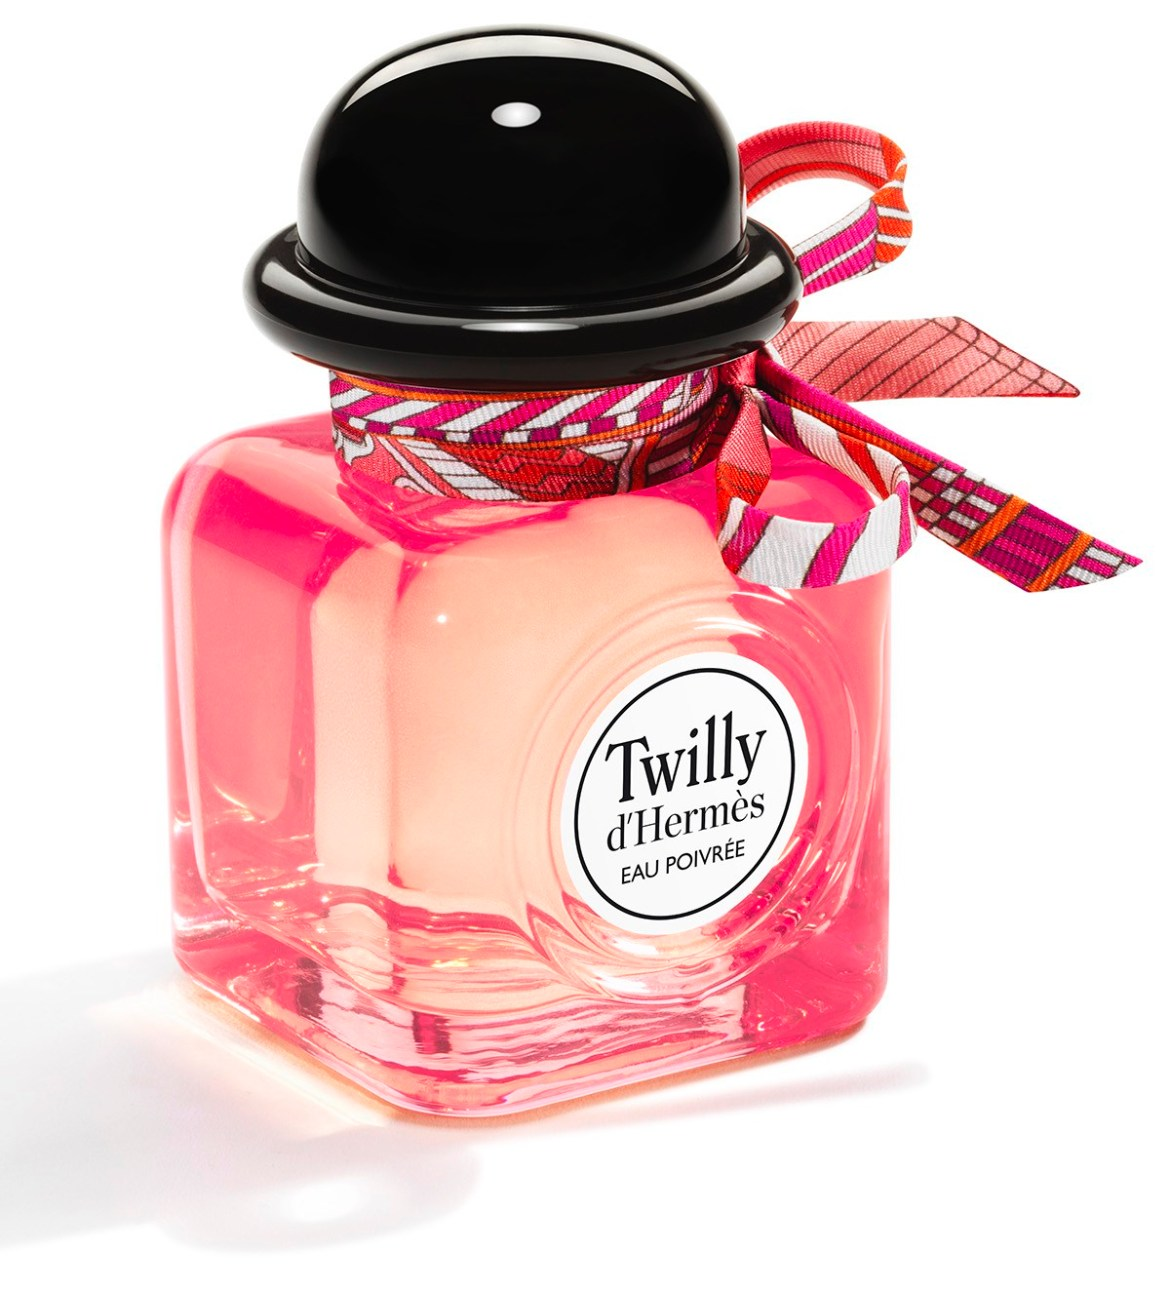 We got our hands on the new fragrance from Hermes, the Twilly Eau Poivree